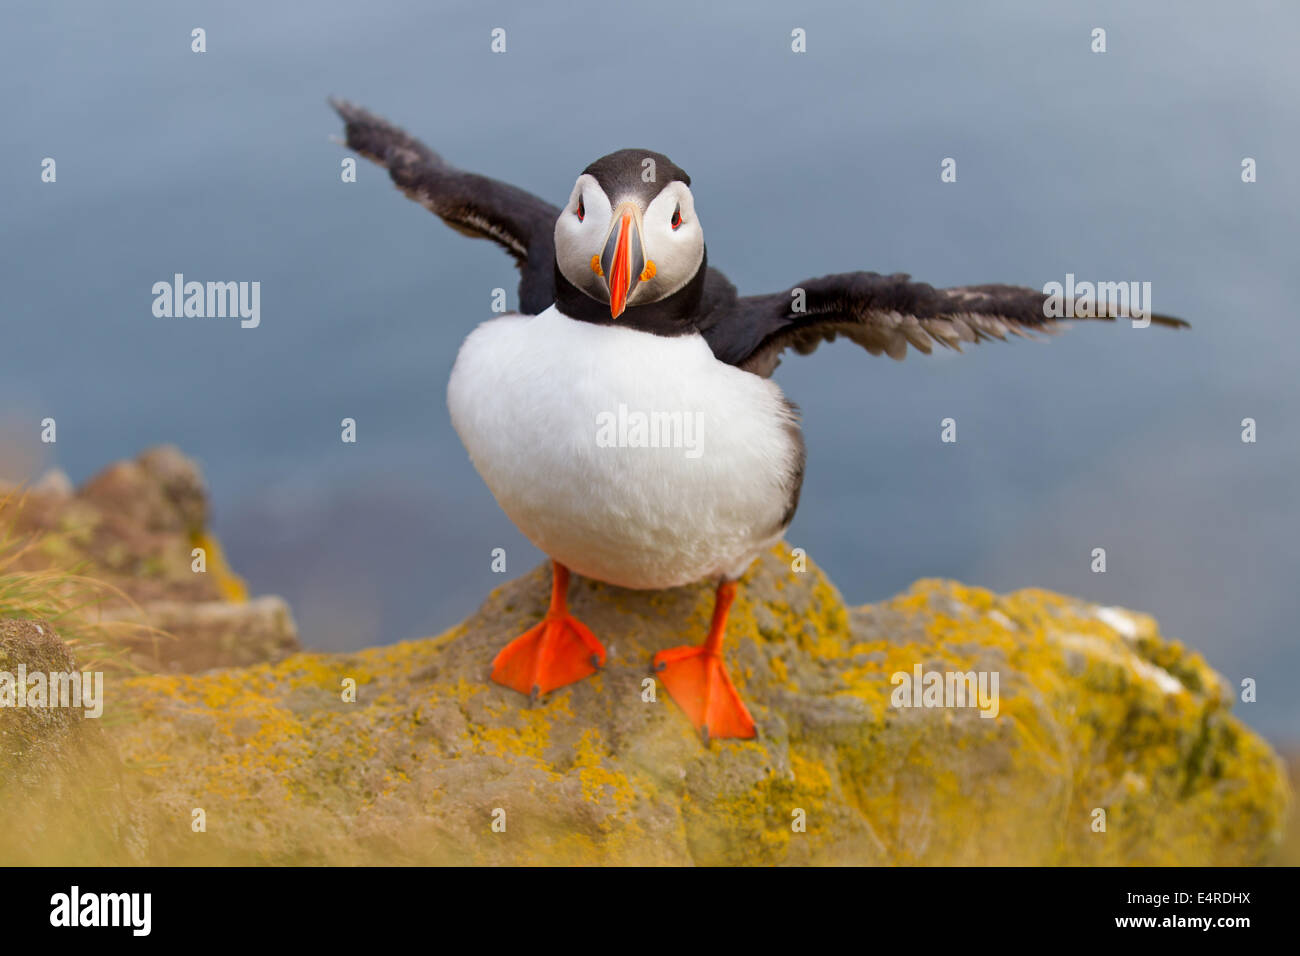 Parrot diver, Atlantic Puffin, Fratercula arctica , Papageitaucher, Atlantic Puffin, Fratercula arctica, Papageientaucher Stock Photo